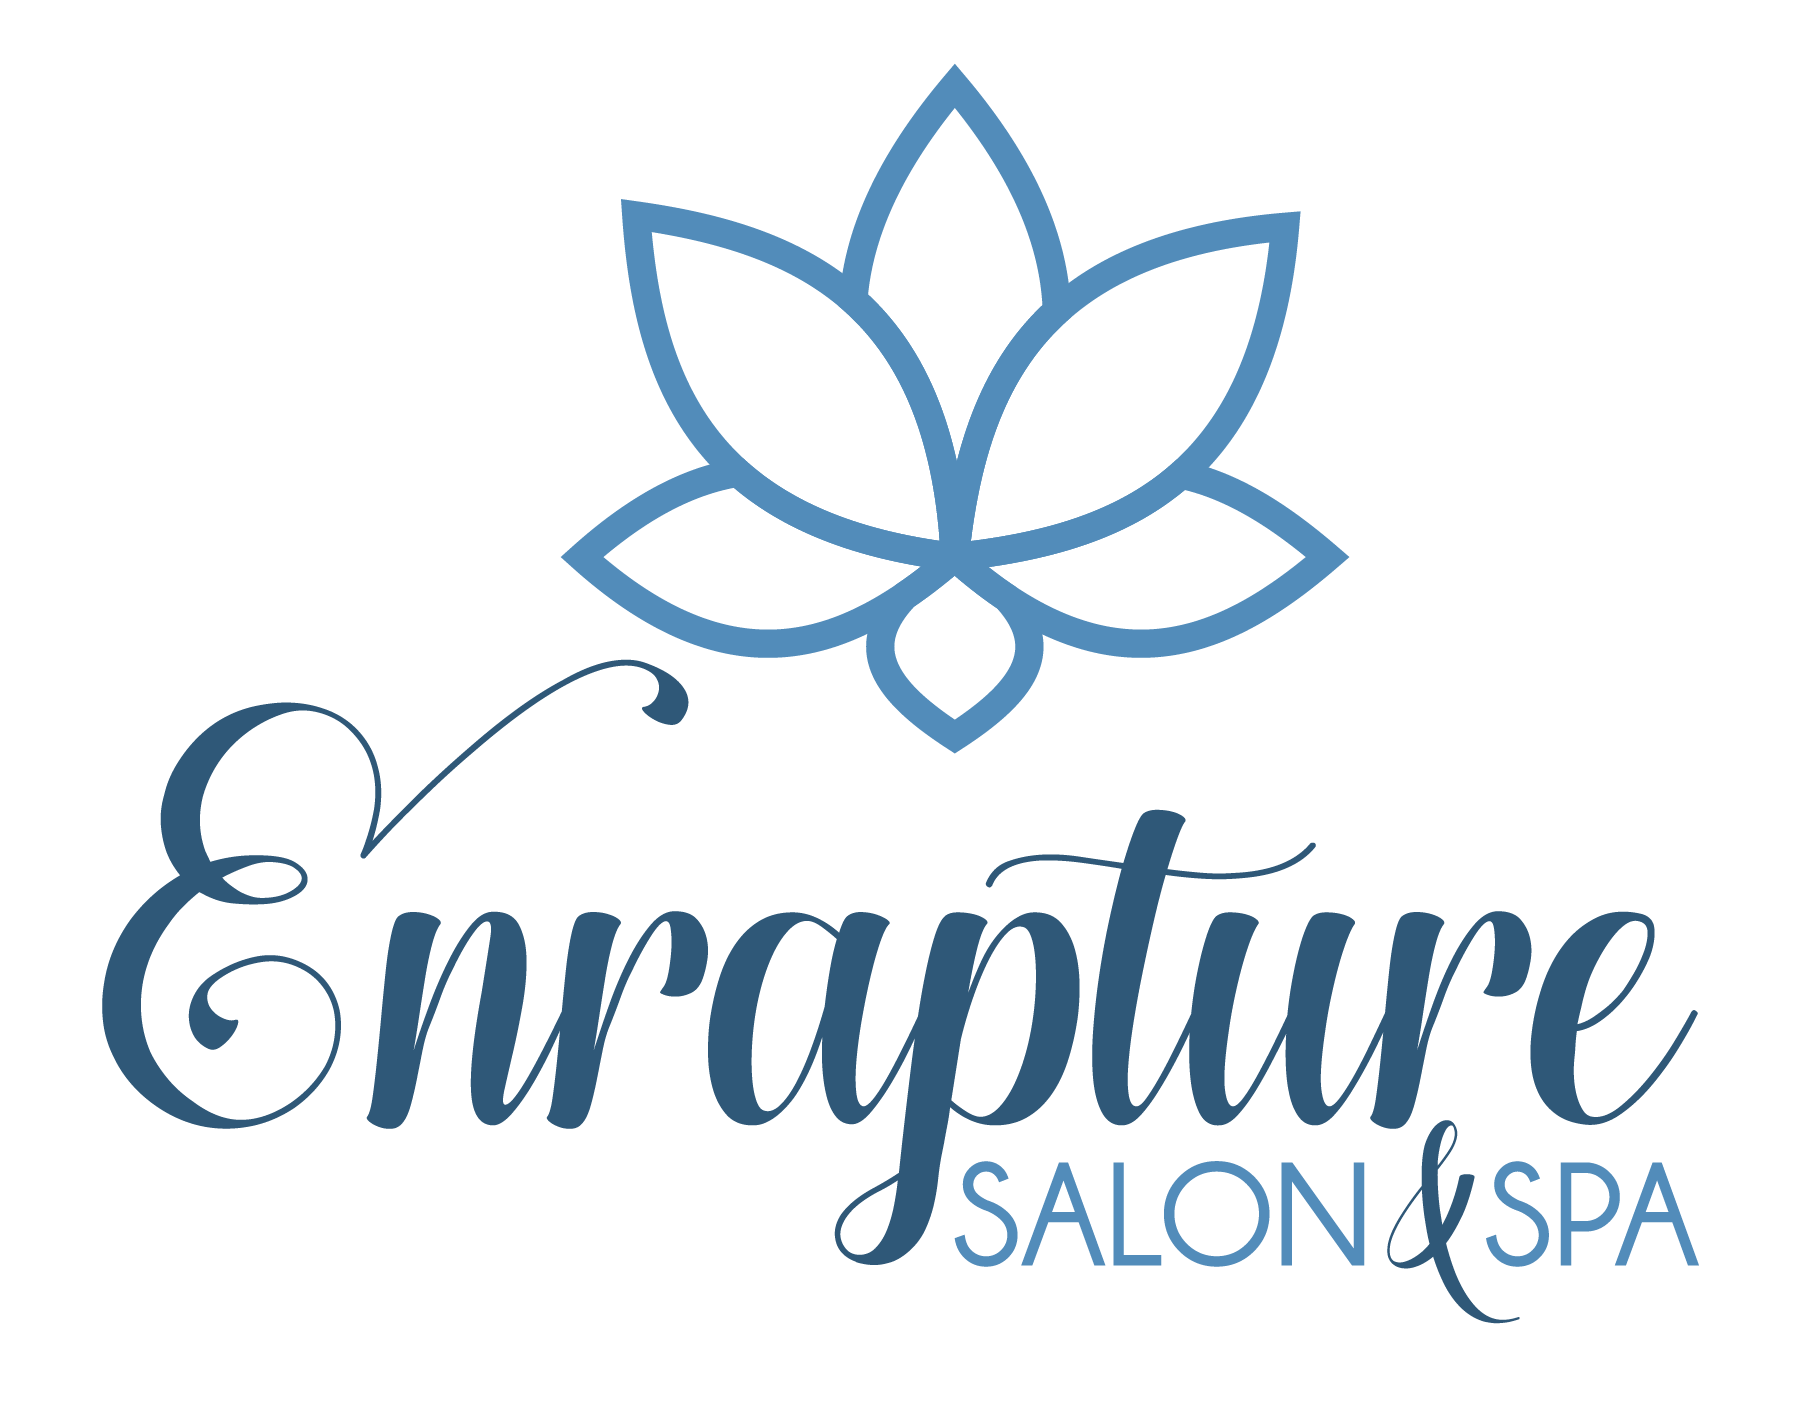 Enrapture Salon & Day Spa